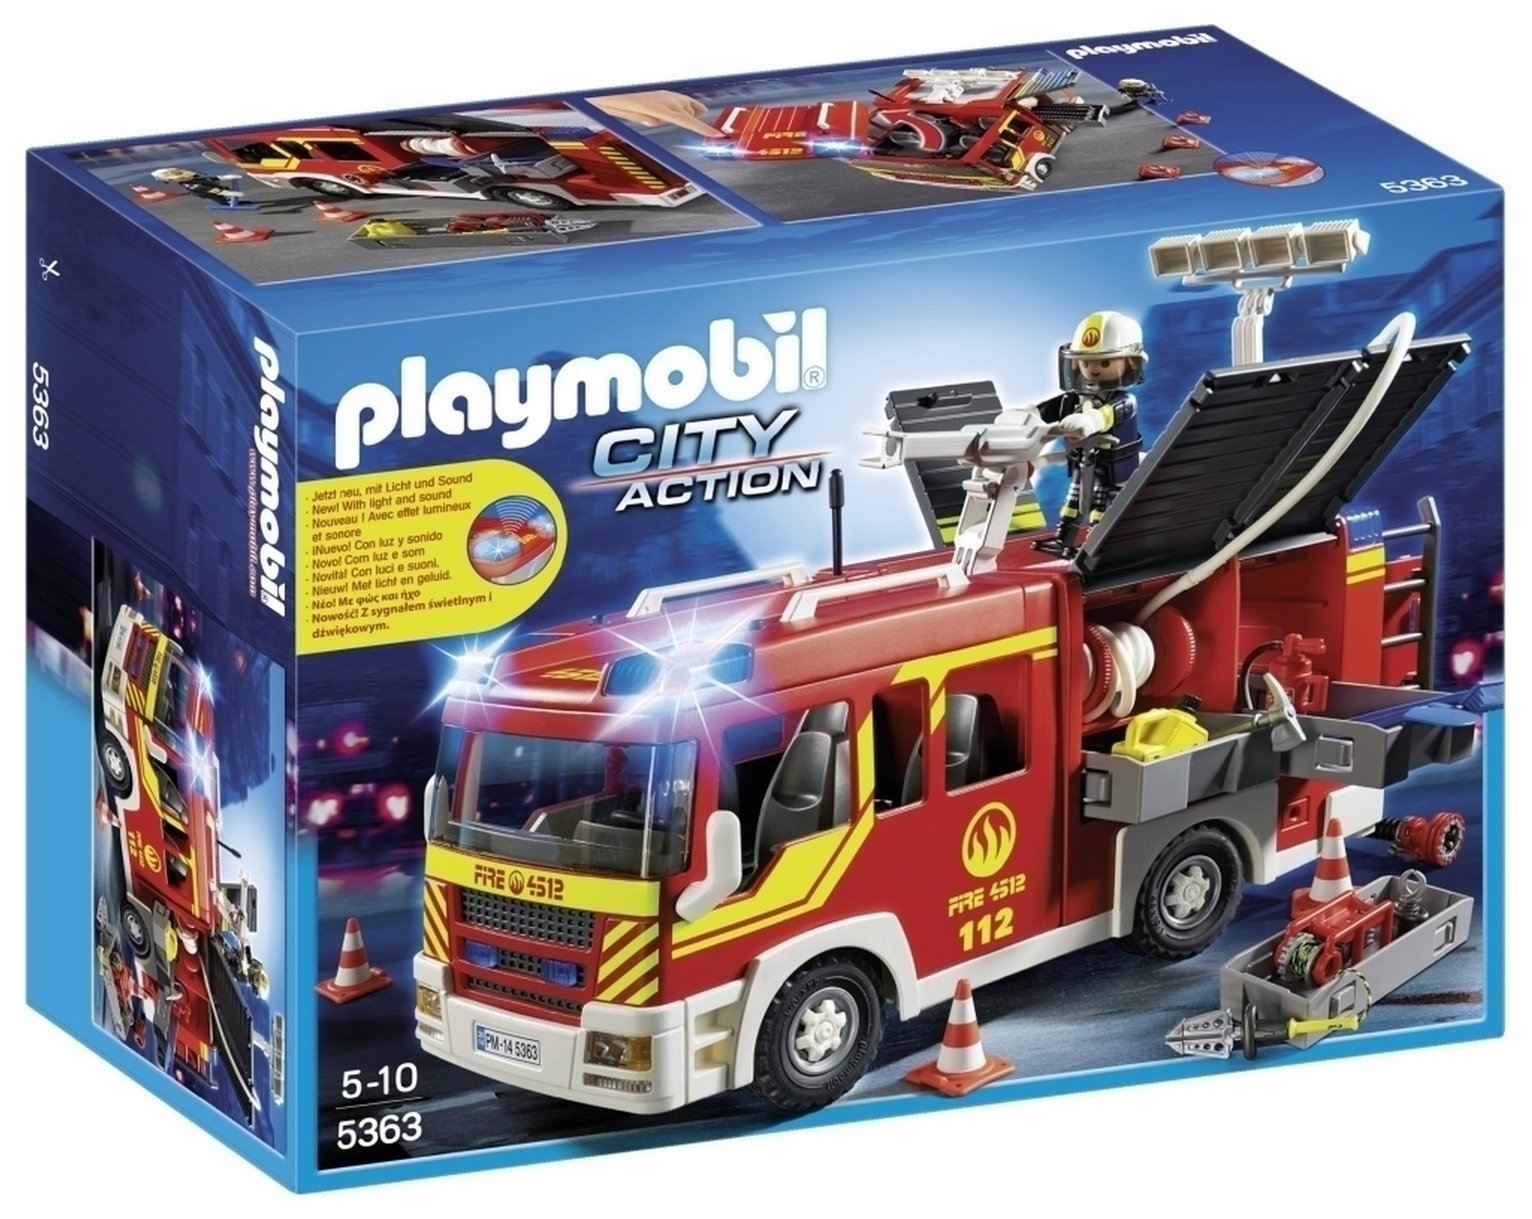 Playmobil 5363 City Action Fire Engine